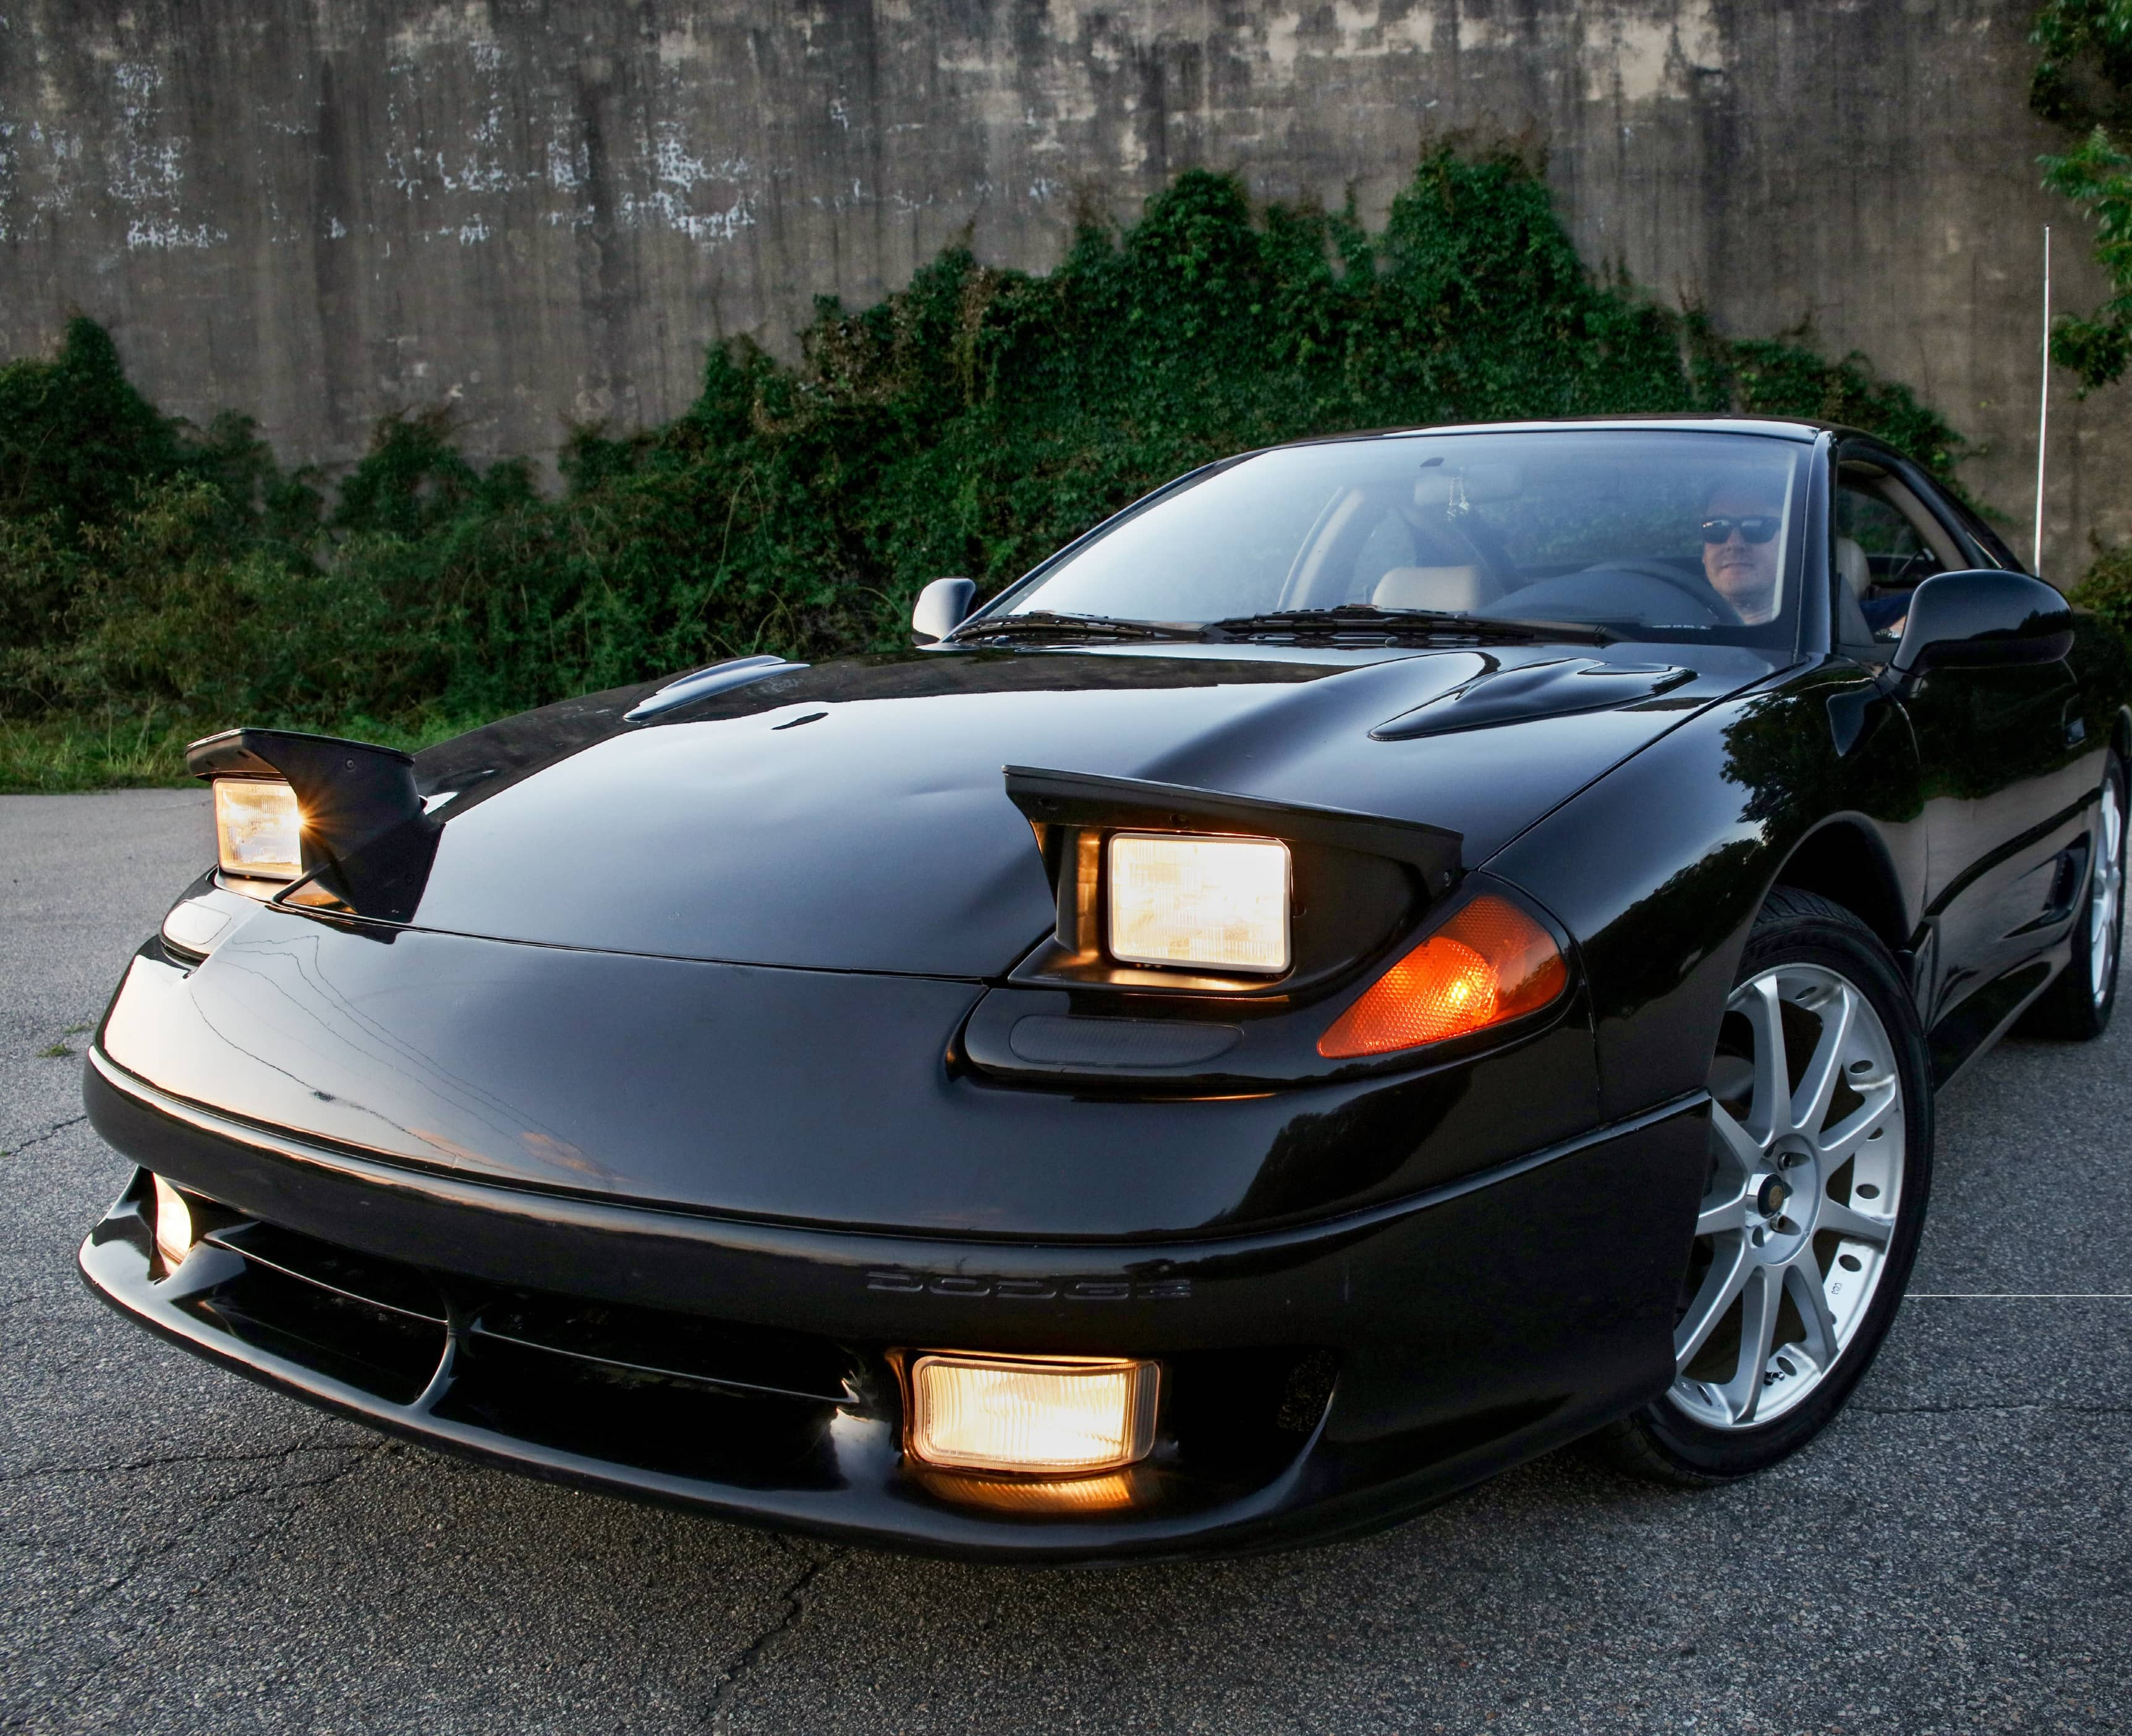 The Dodge Stealth Is Power, Tech, And Pop-up Headlights